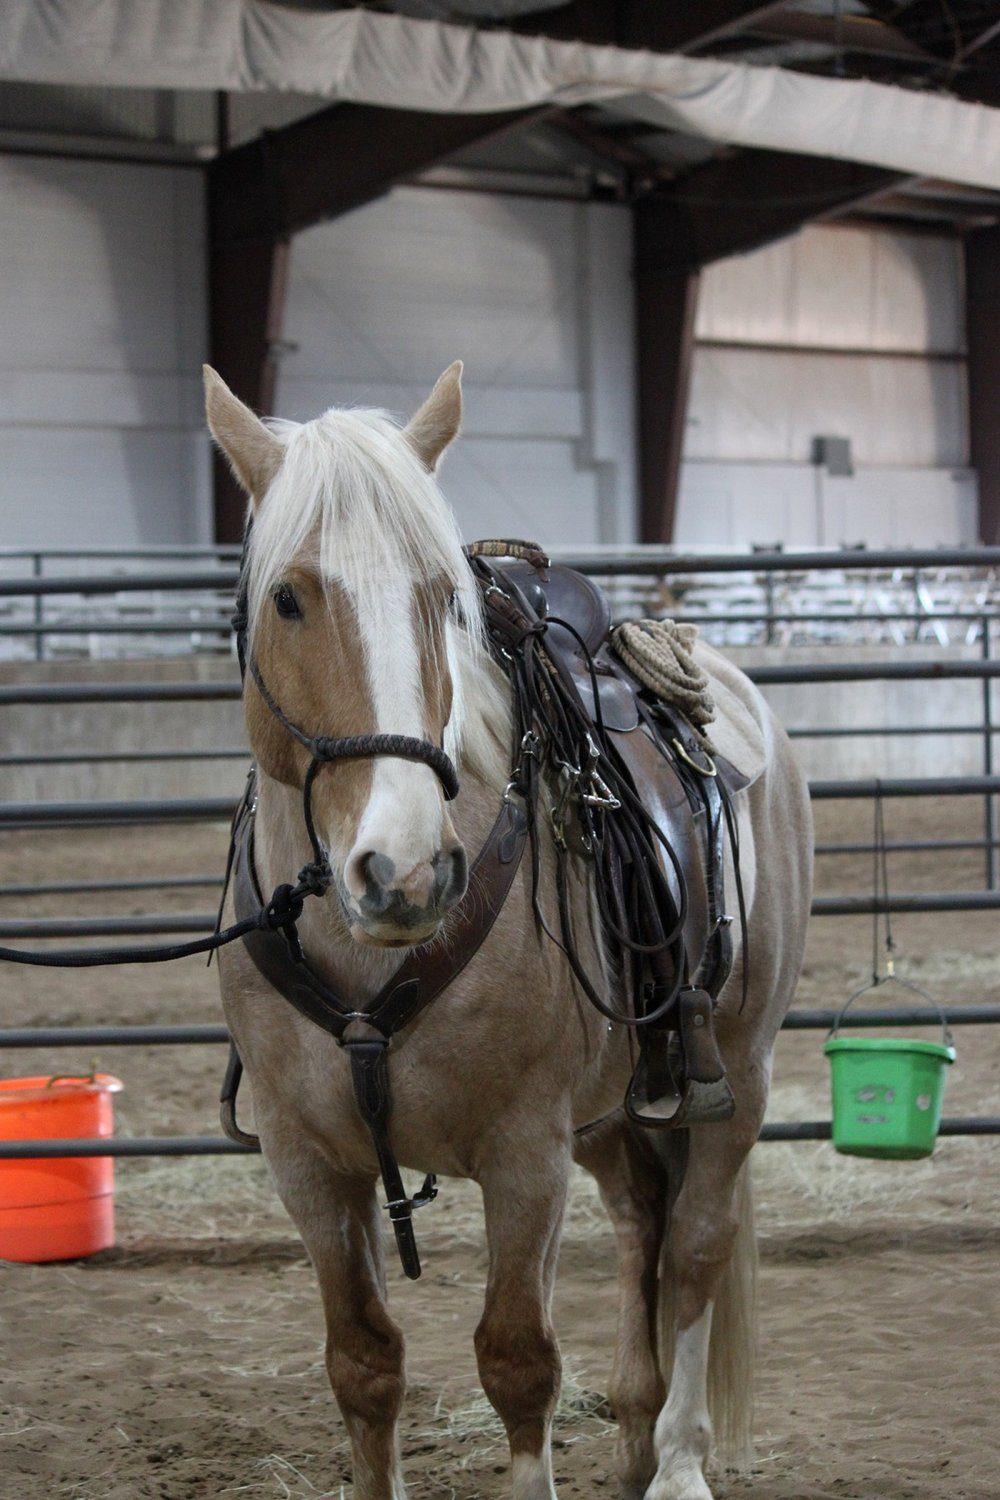 This beautiful palomino gelding was the only horse ready for saddling at the Batesville event.  He was not available for adoption.